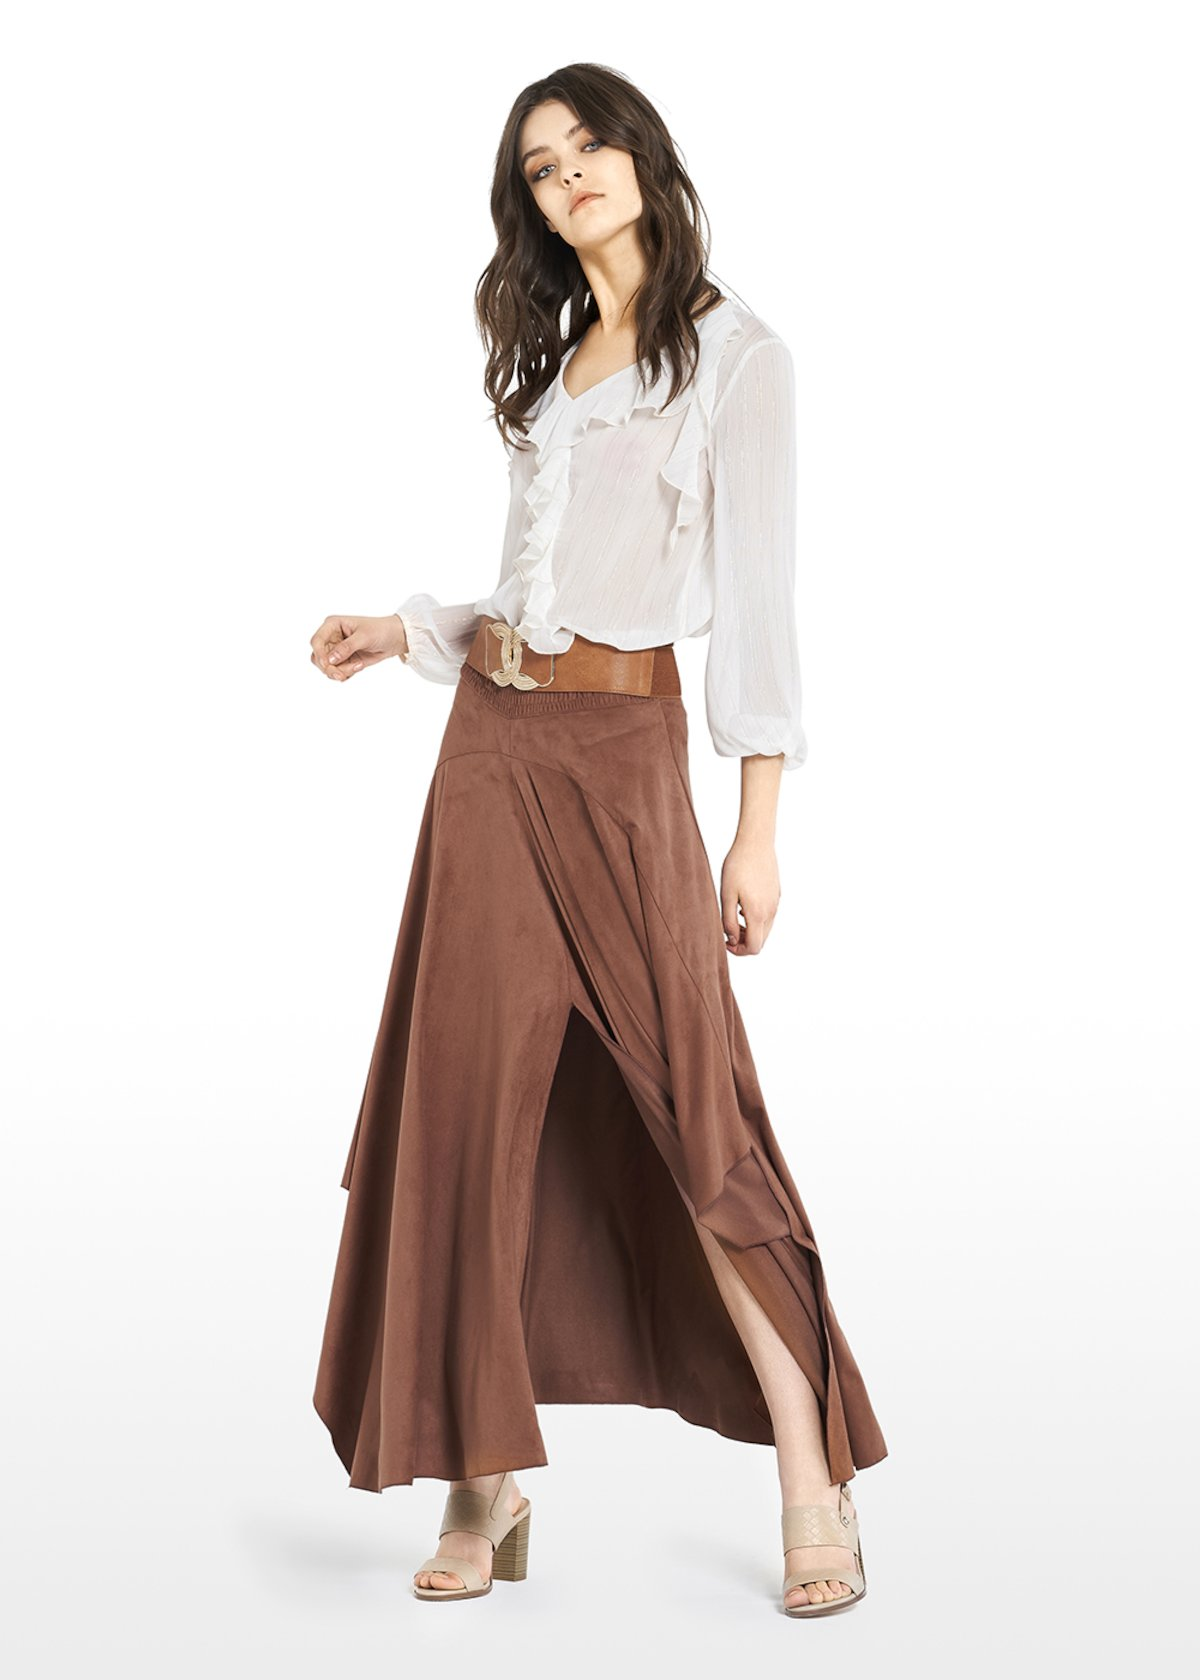 Giada fake suede long skirt with front slit - Tobacco - Woman - Category image